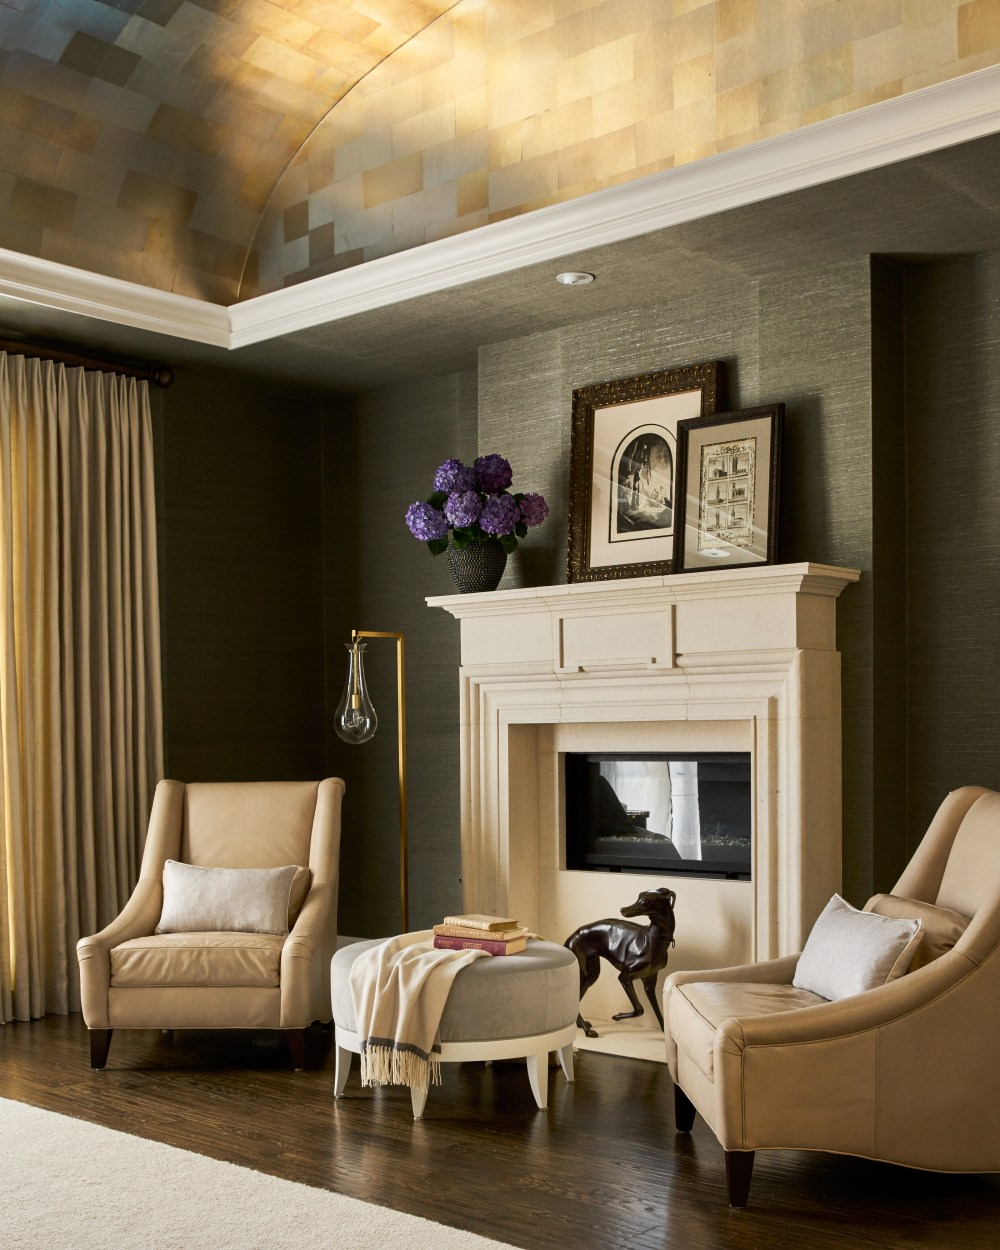 Designer Denise pays thoughtful attention to shape, texture and color - even when designing in neutrals.